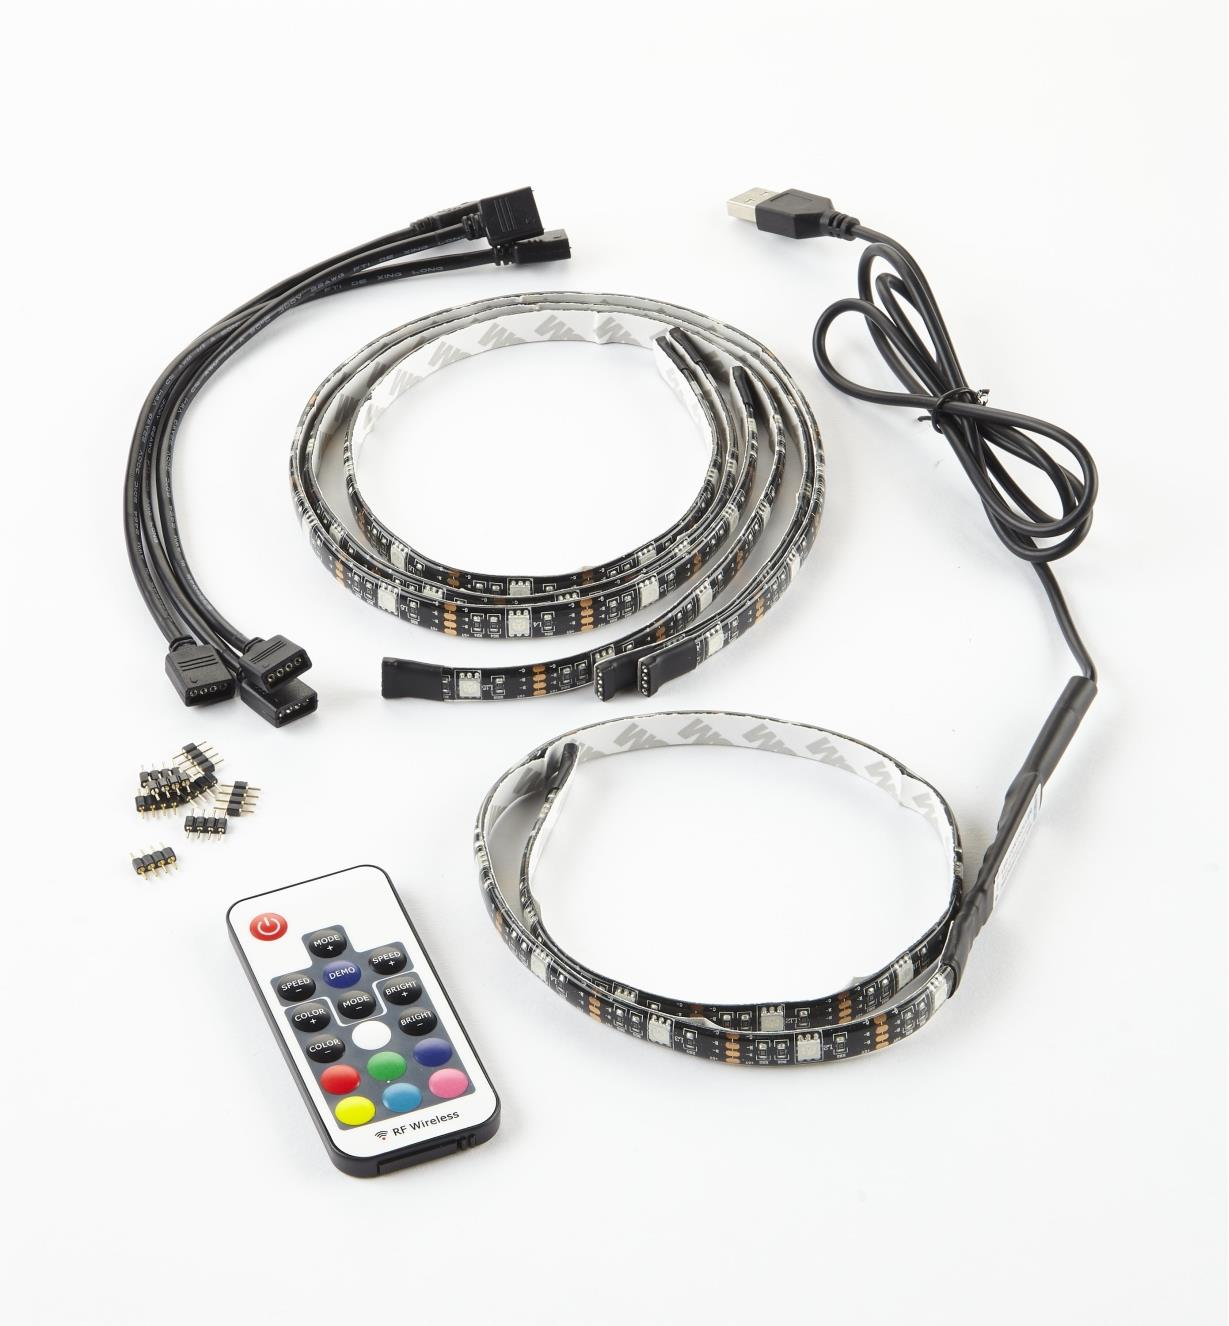 00U4620 - USB Color-Controlled LED Tape Light Kit